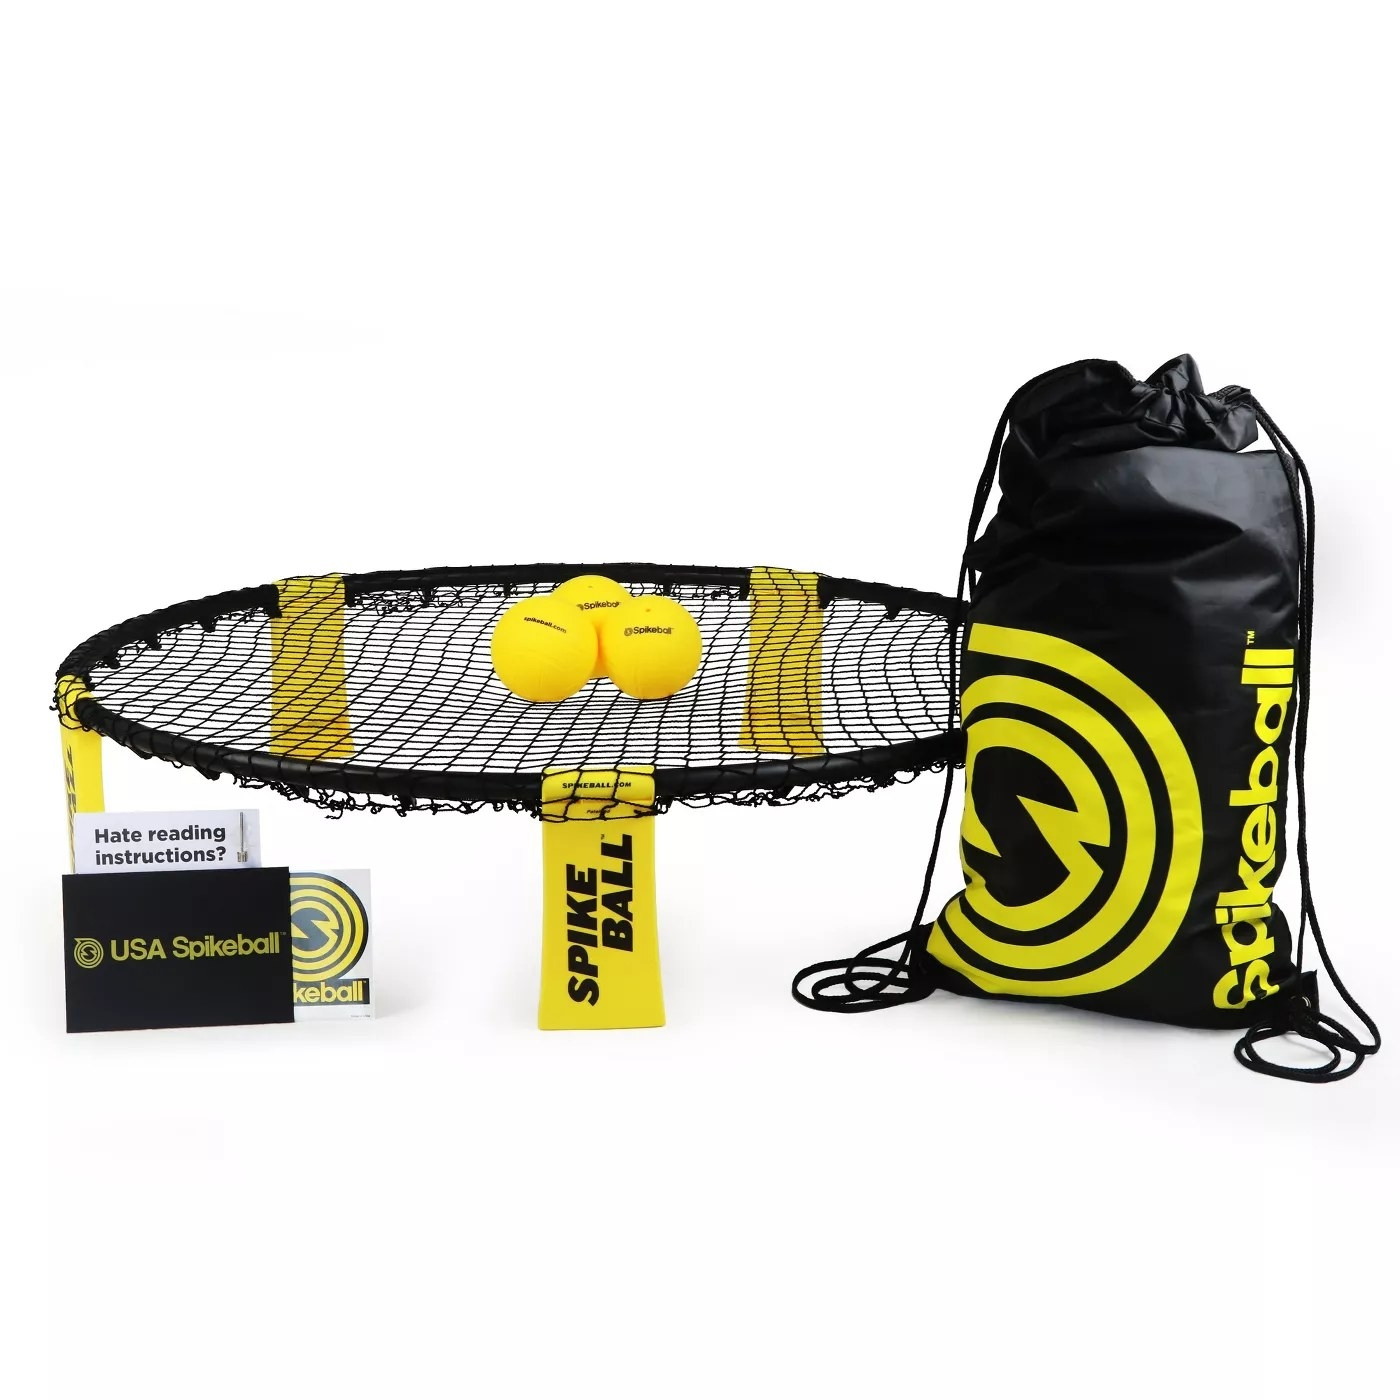 The Spikeball set has balls, a drawstring bag and and a net